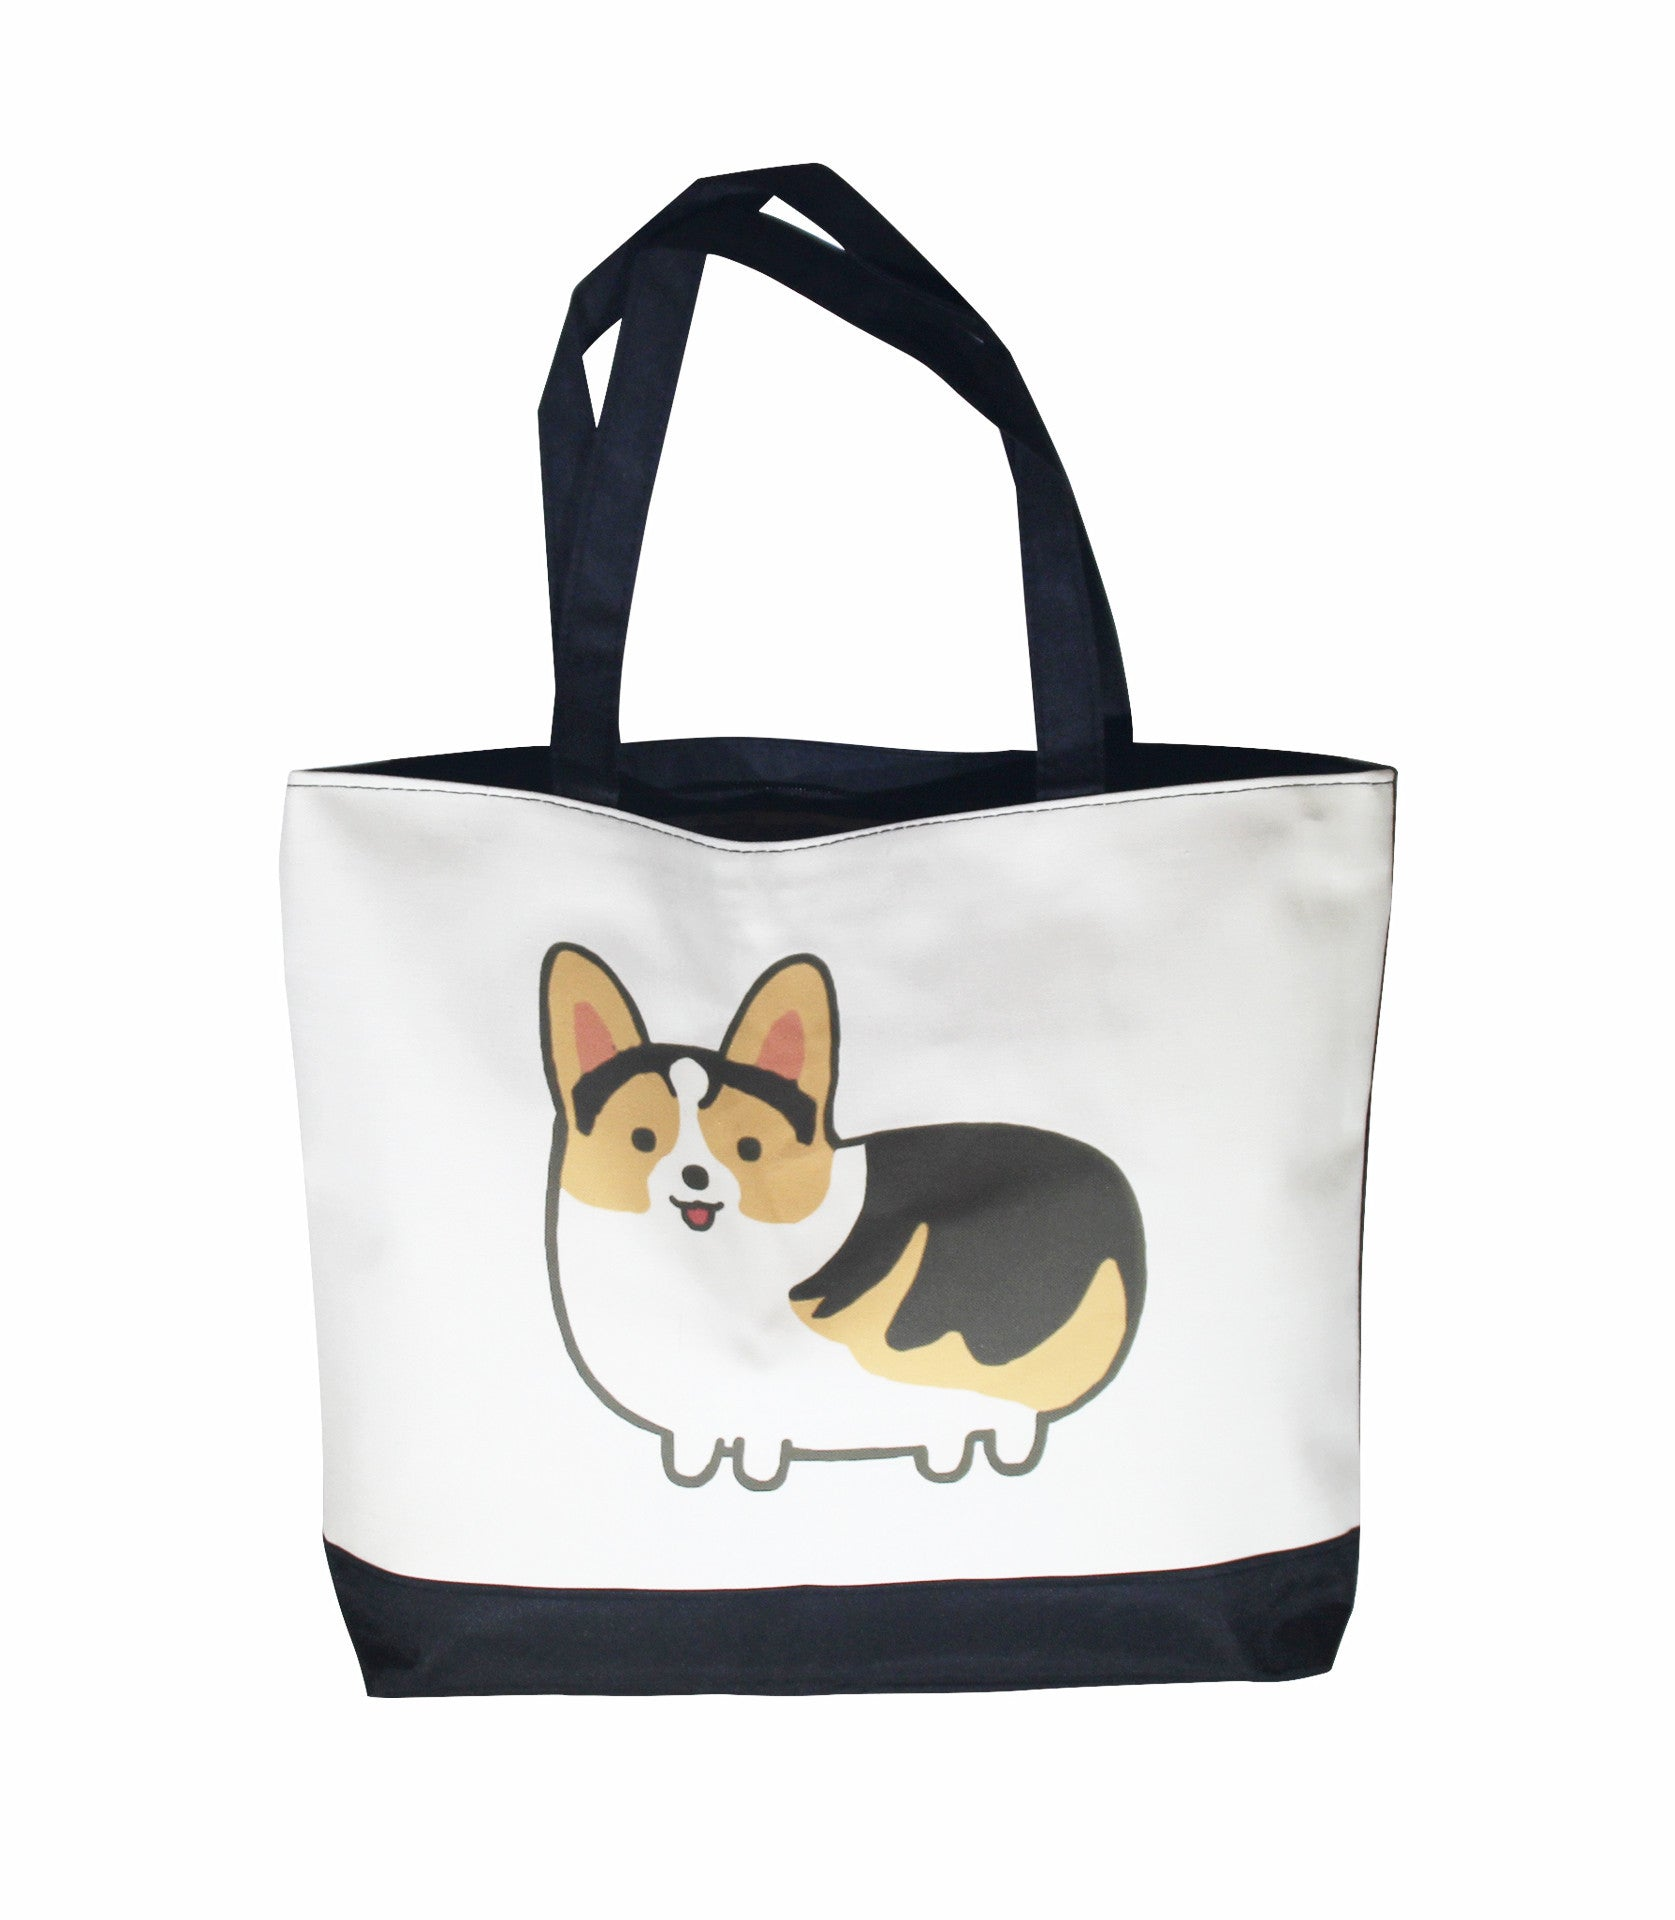 Chubby Corgi Canvas Bag is a great addition for corgi dog owners as a unique corgi gift.  This is a great idea as a gift for corgi owners.